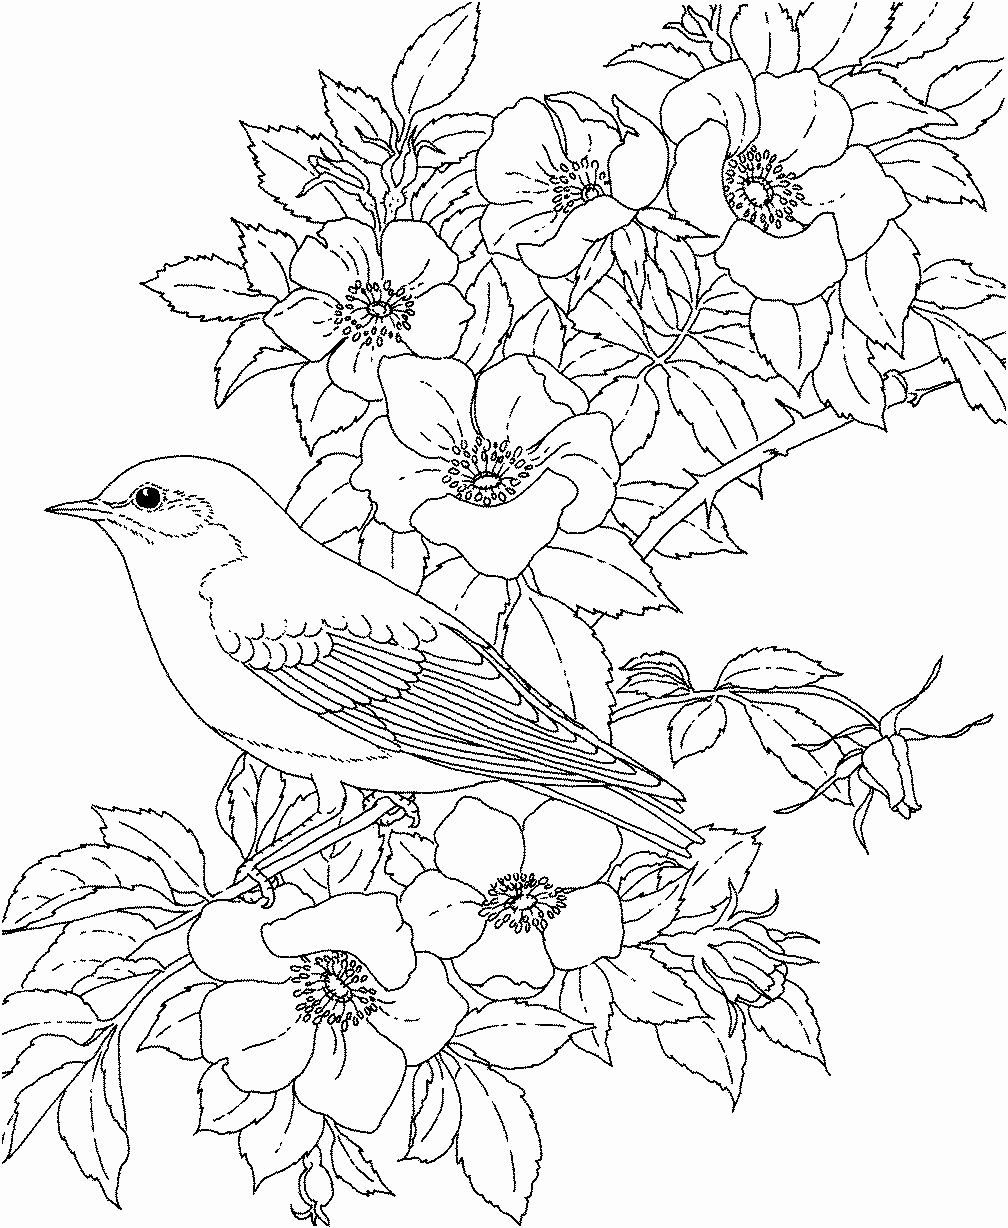 Nature Coloring Books New Coloring Pages Birds And Flowers Bird Coloring Pages Animal Coloring Pages Flower Coloring Pages